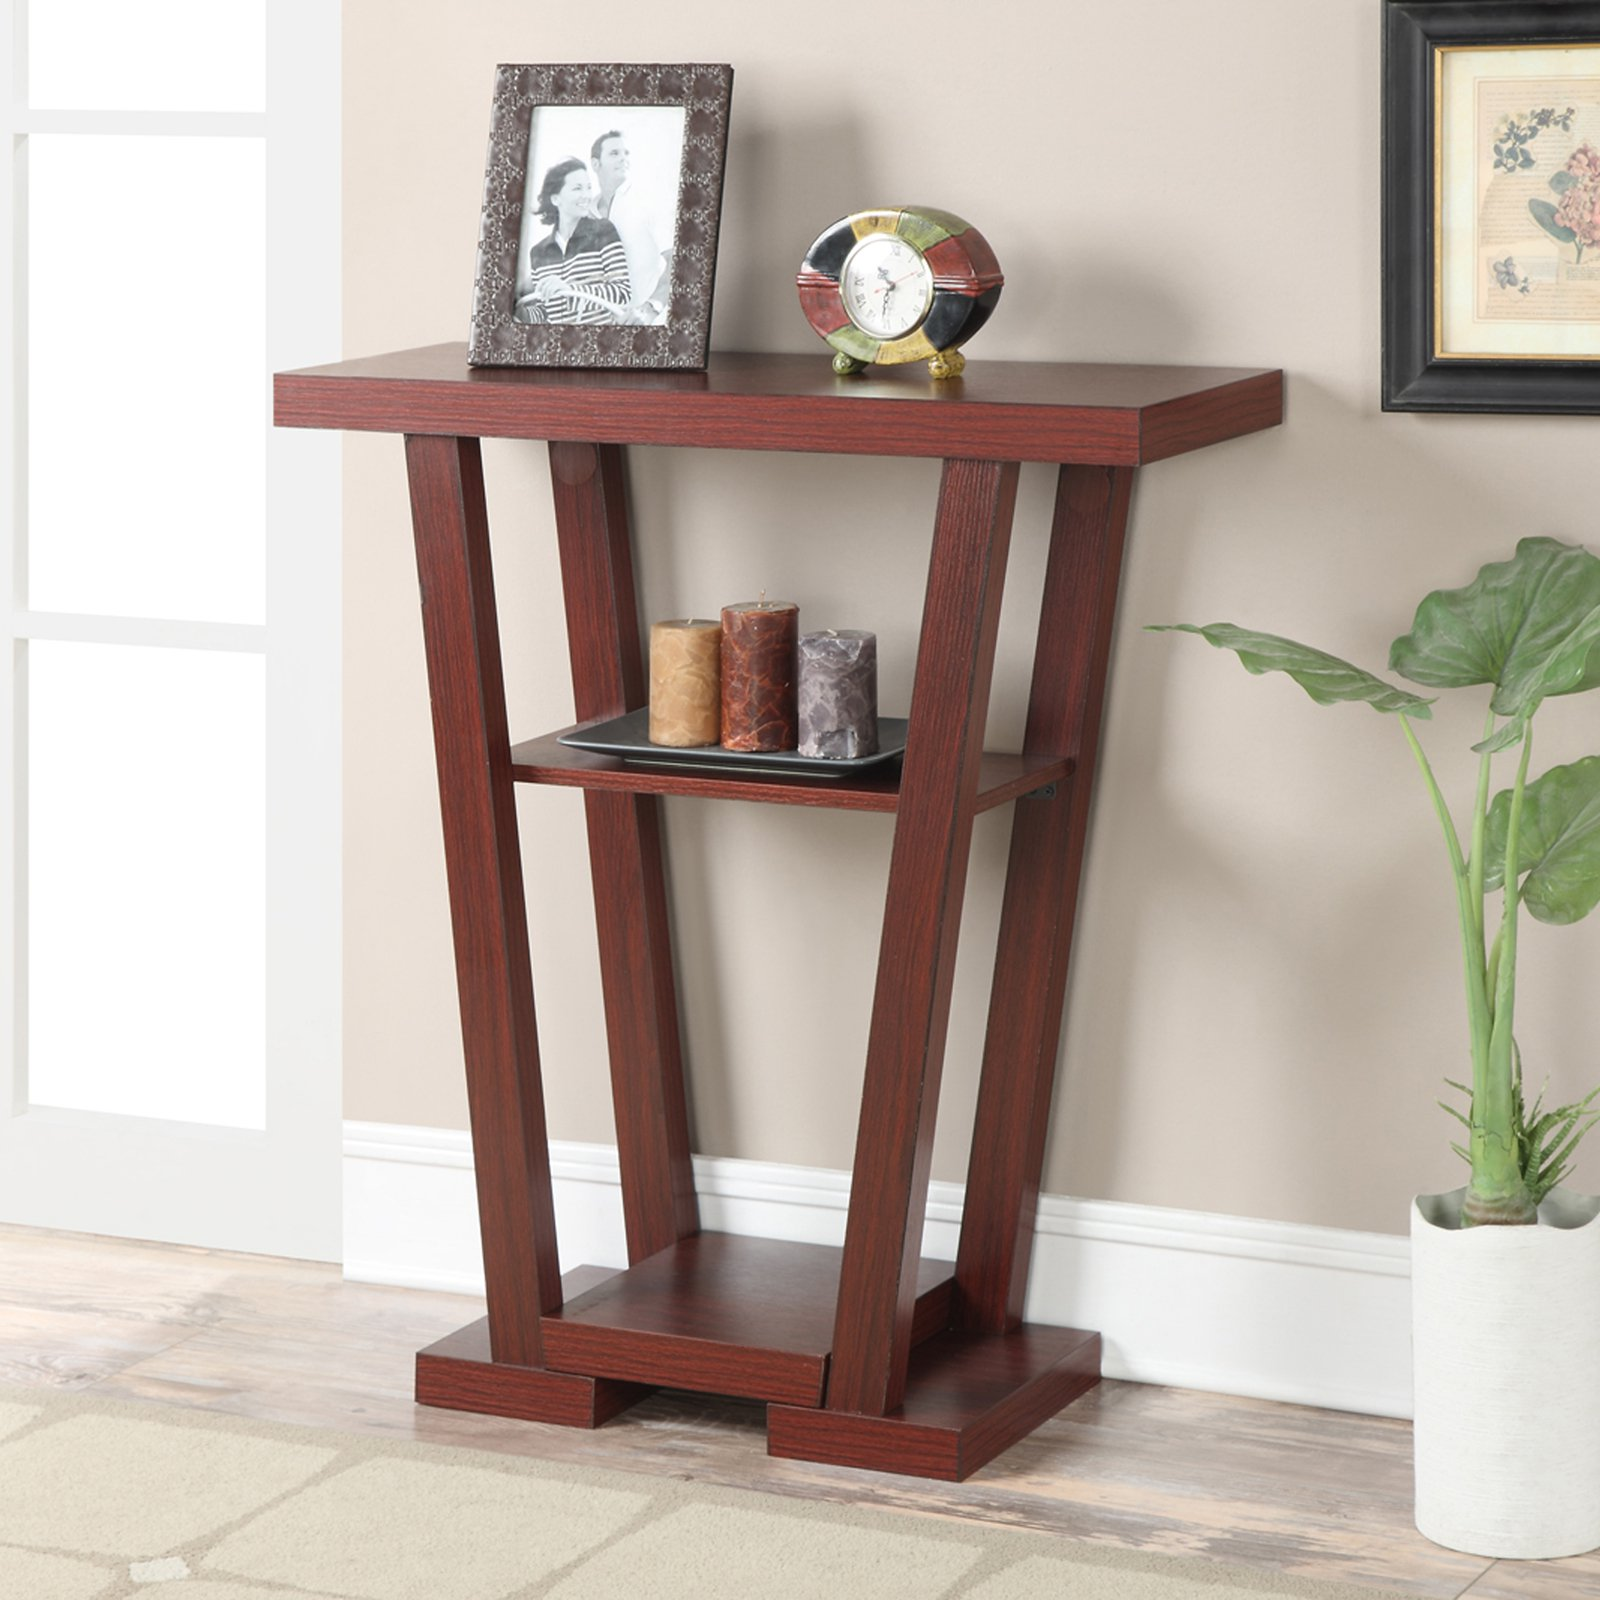 Convenience Concepts Newport V Console Table, Multiple Finishes by Convenience Concepts